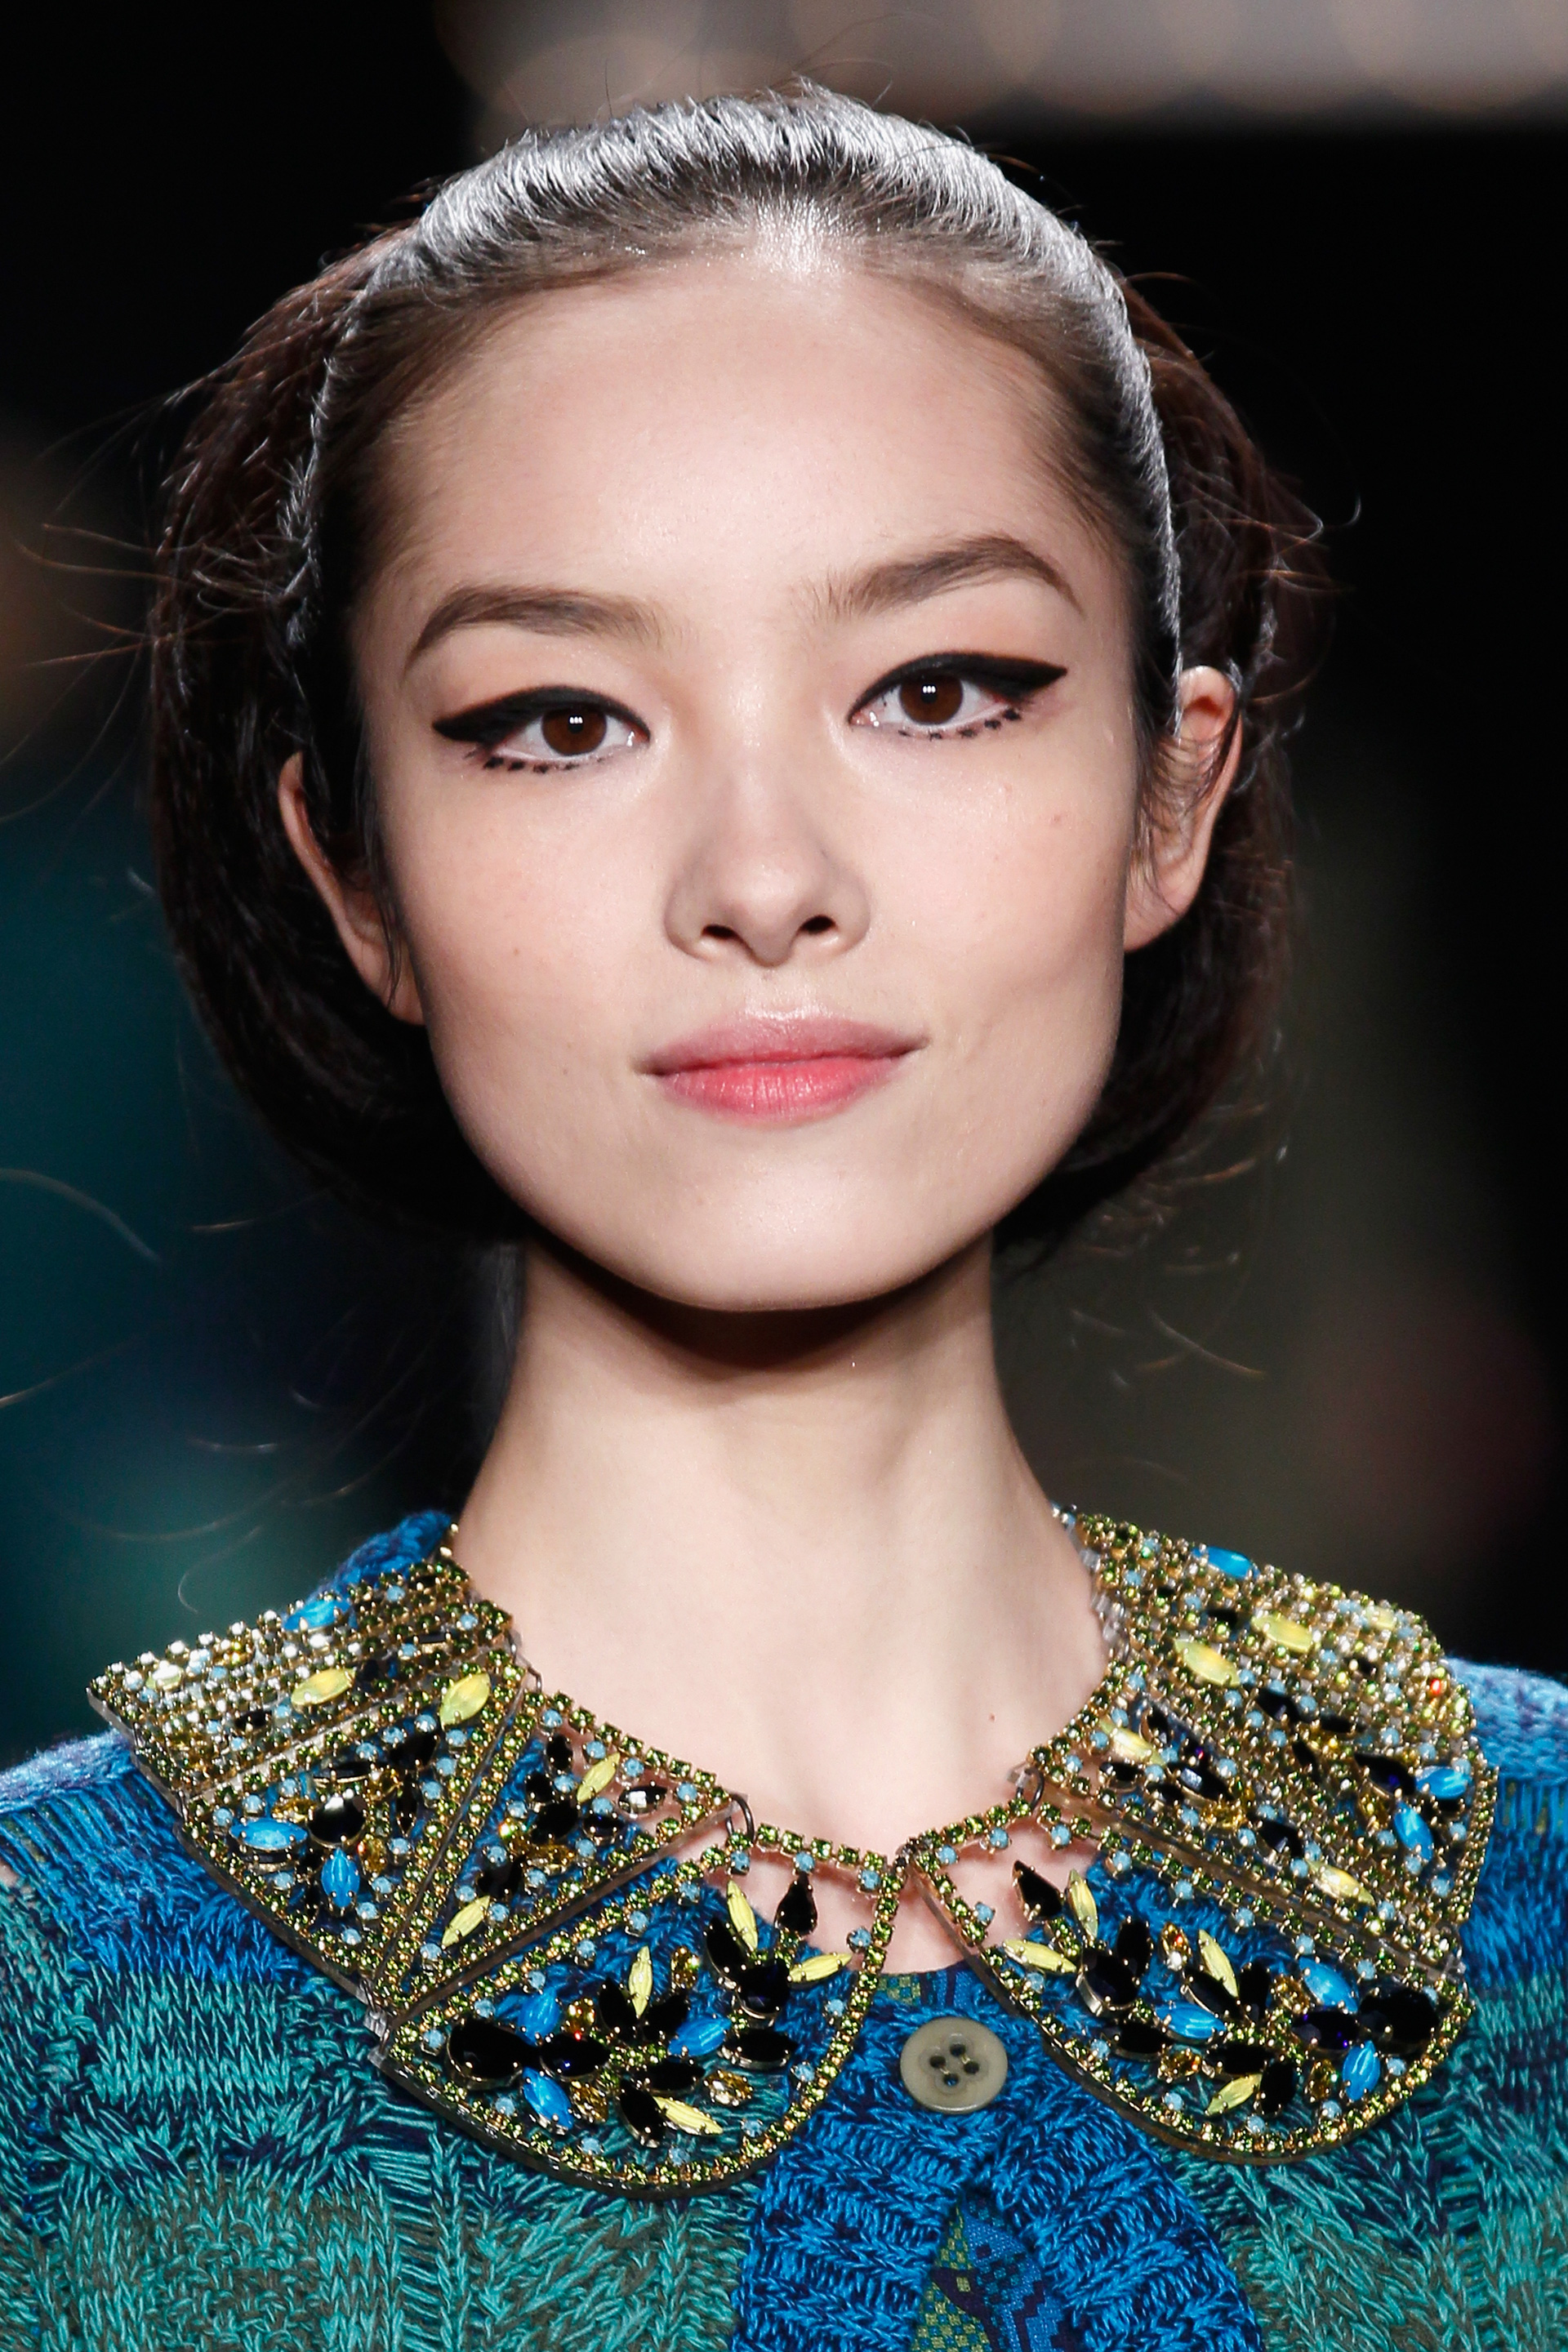 Anna Sui models wearing dotted eye makeup in 2013